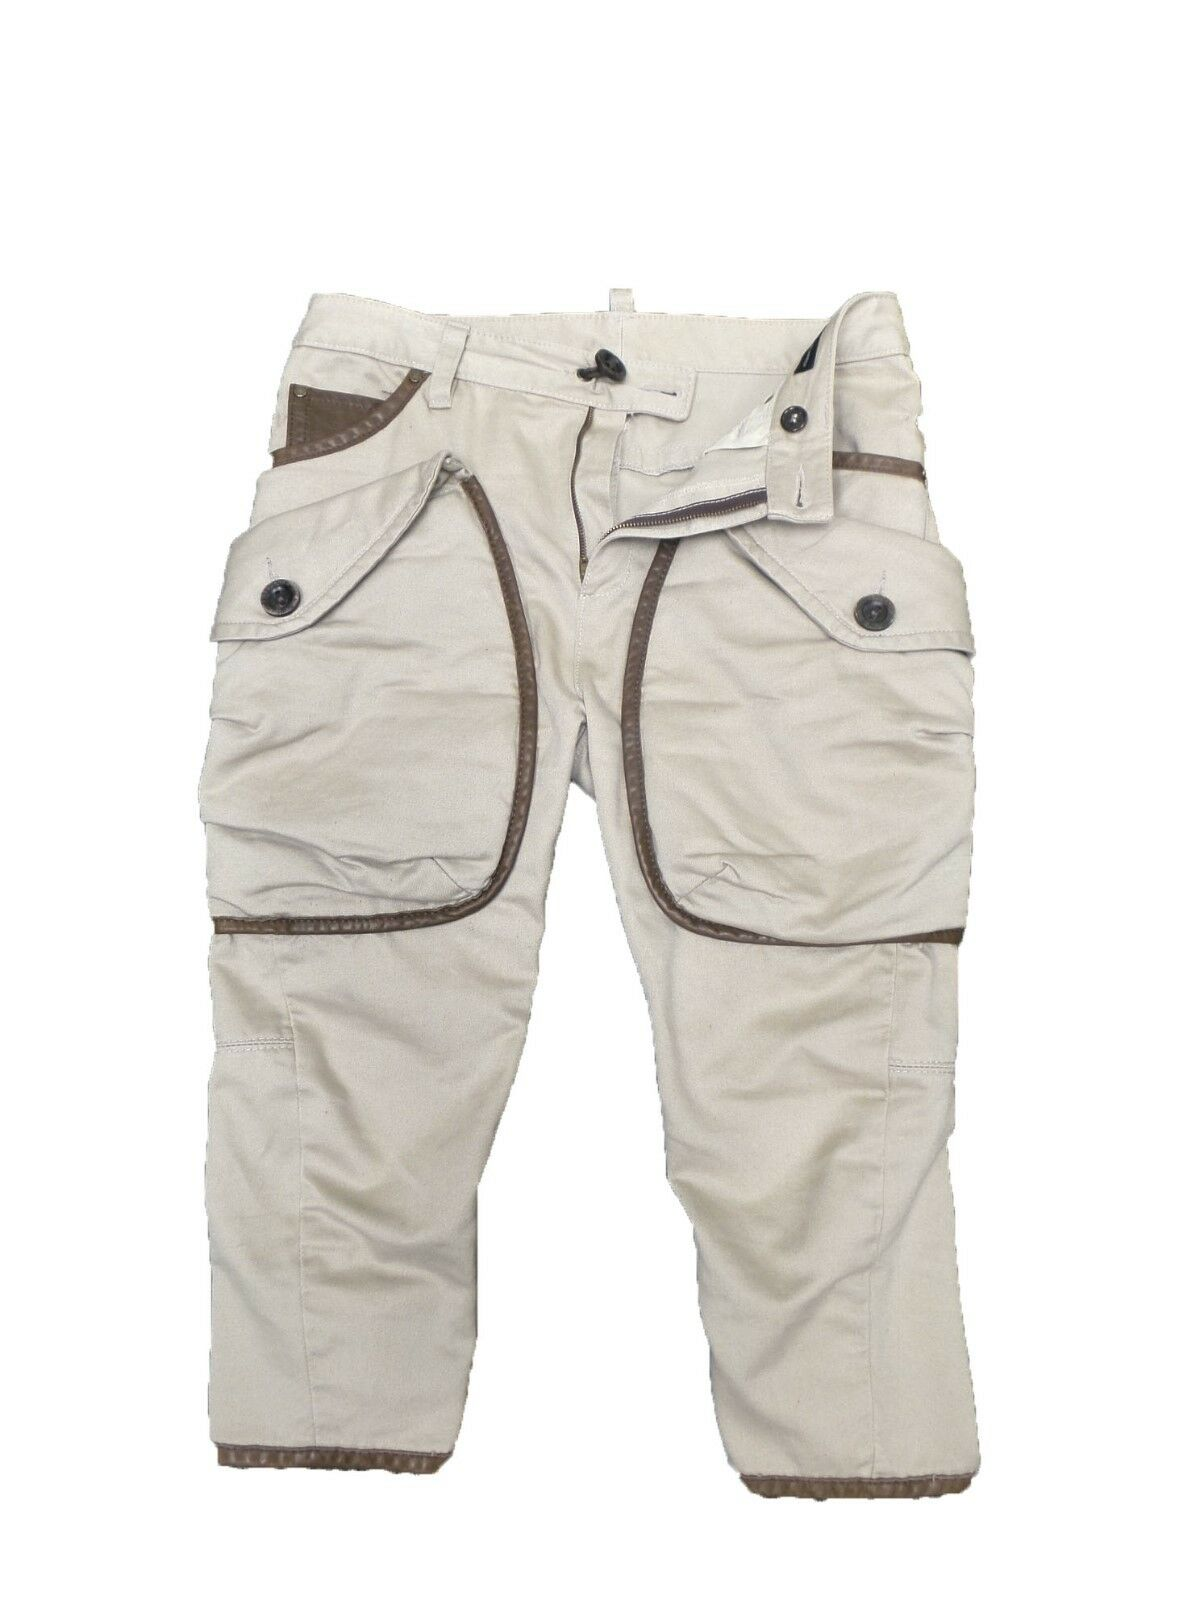 DSQUARED2 Khaki\Beige Cropped Pants size 42